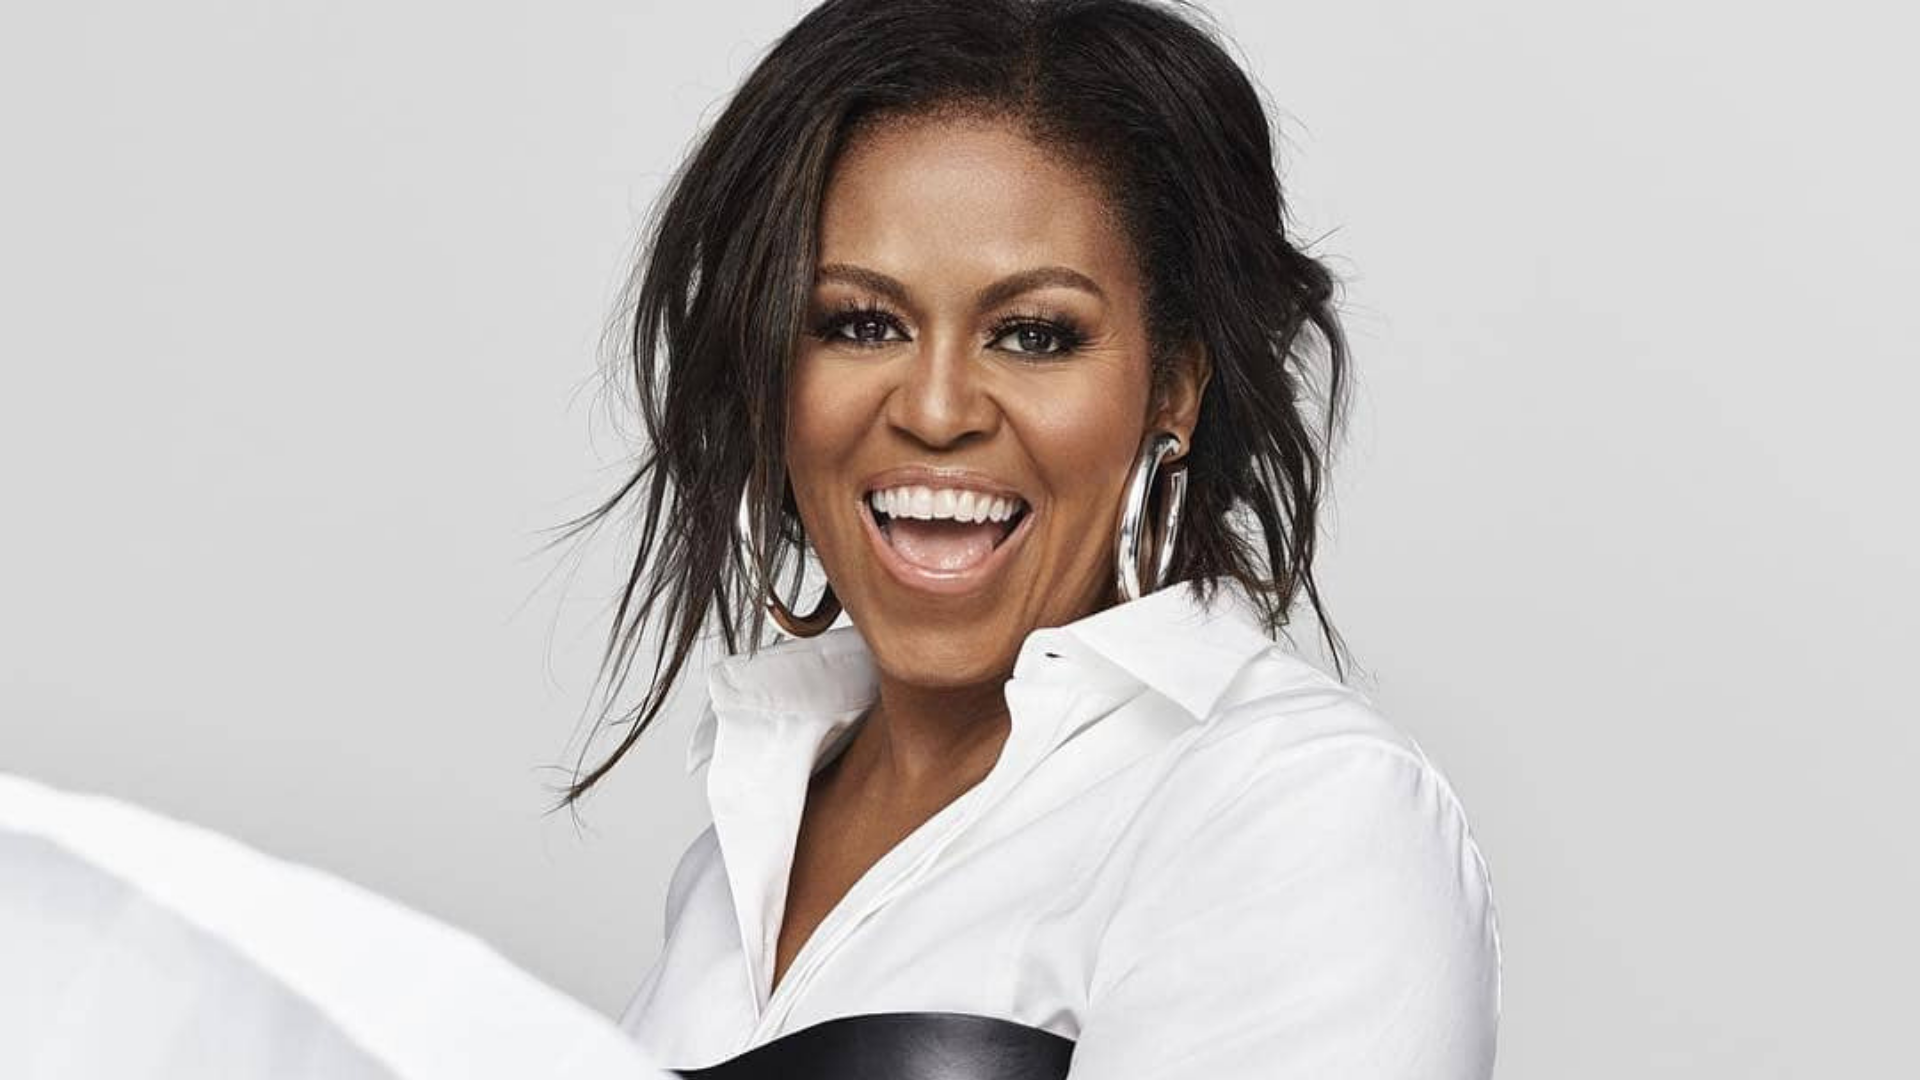 10 Things We Learned About Michelle Obama In Her New Memoir